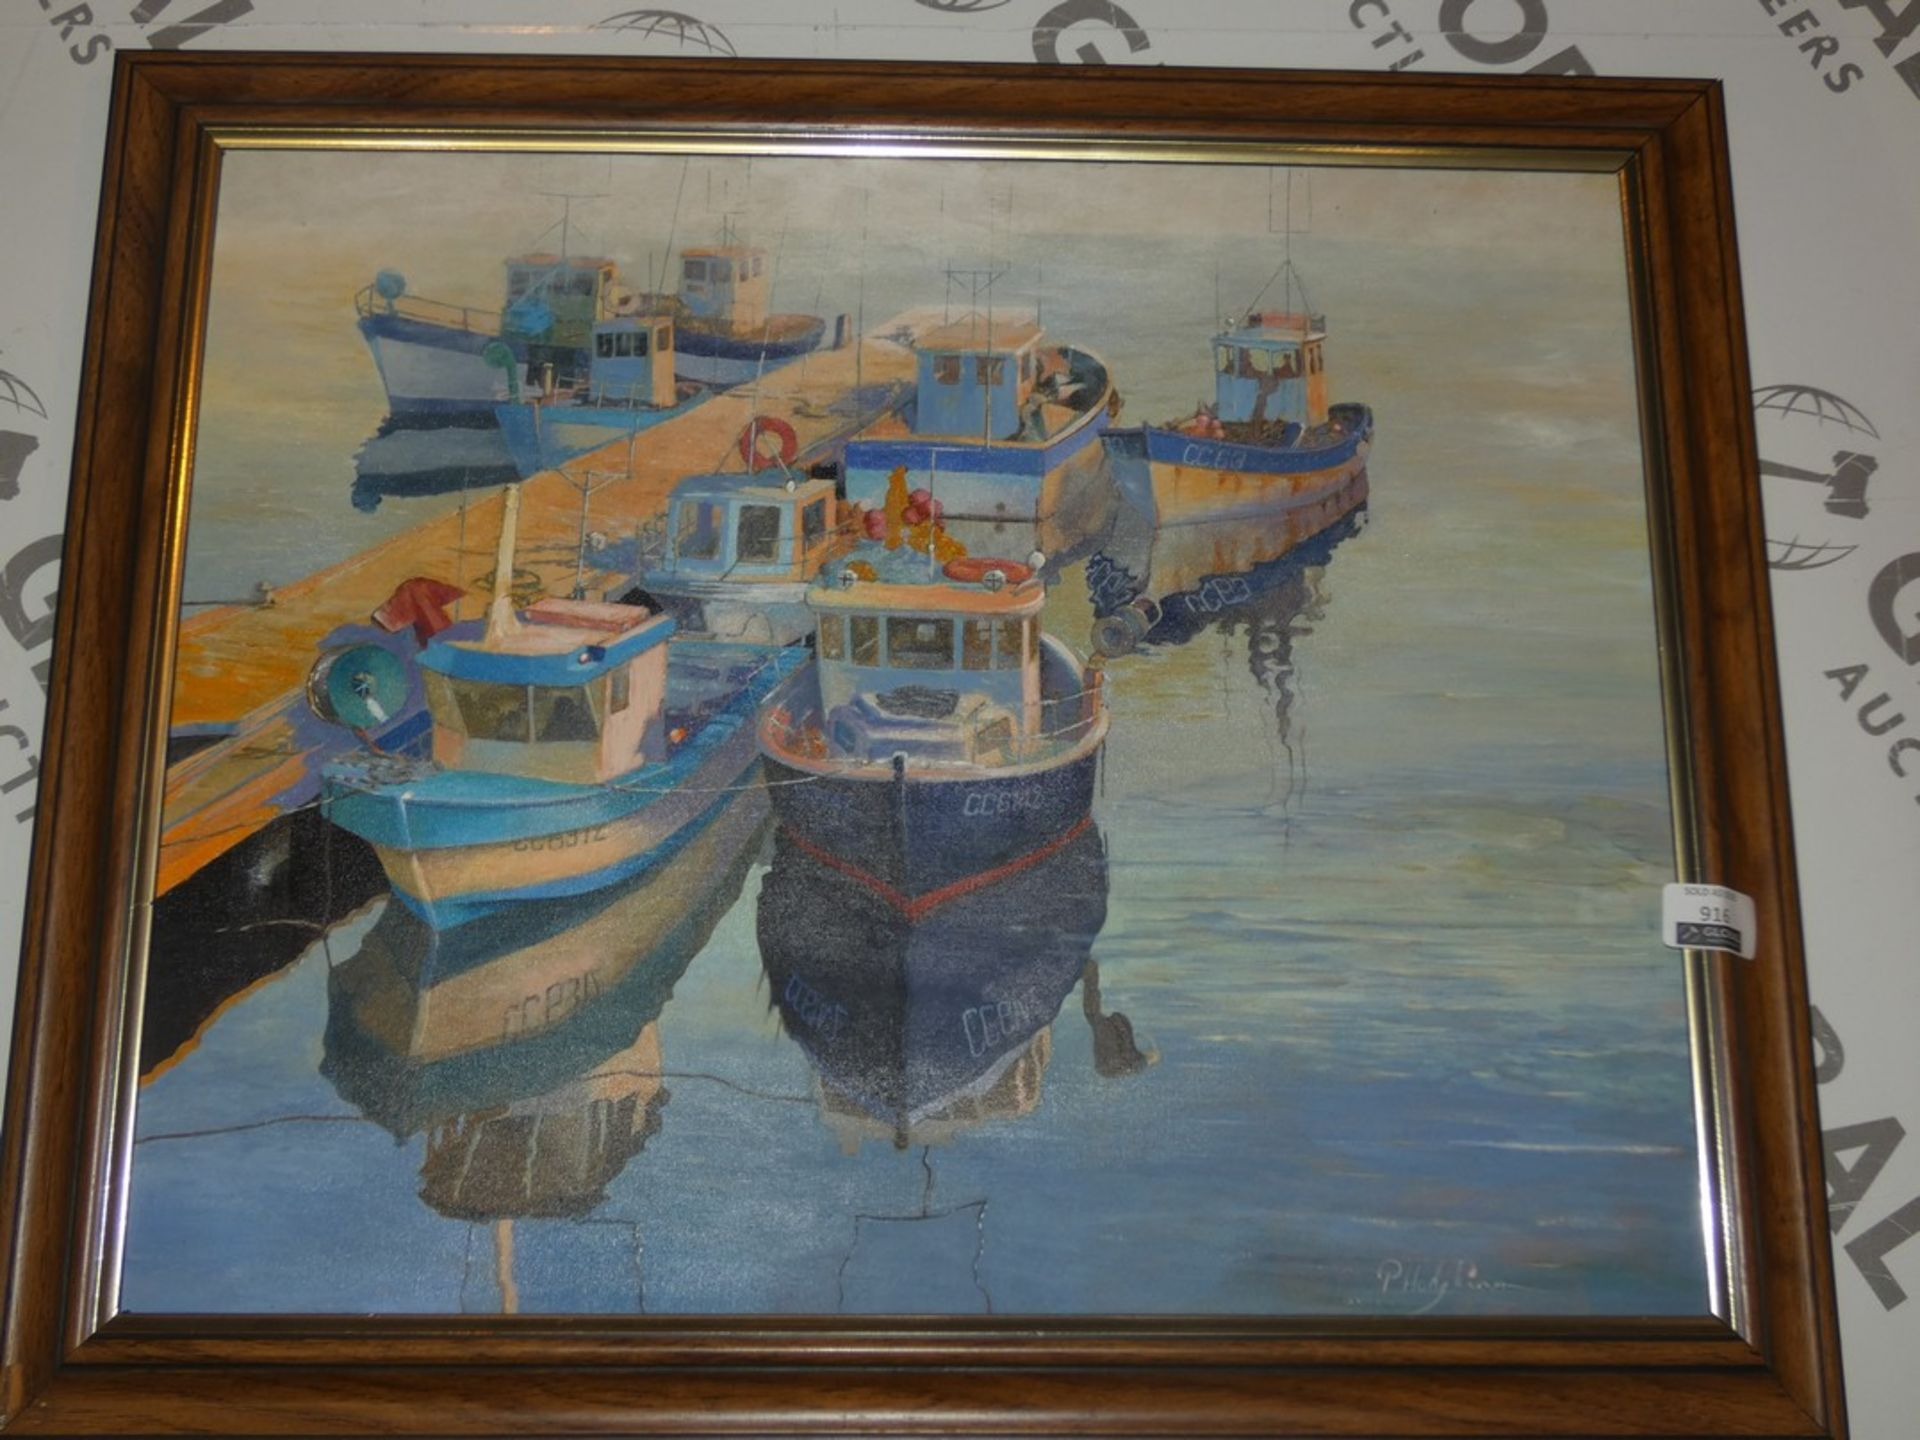 Lotto 916 - Boats Docking At Harbour - Artist, P. Hodgking. Framed Painted Print, No Glass. Estimated Value